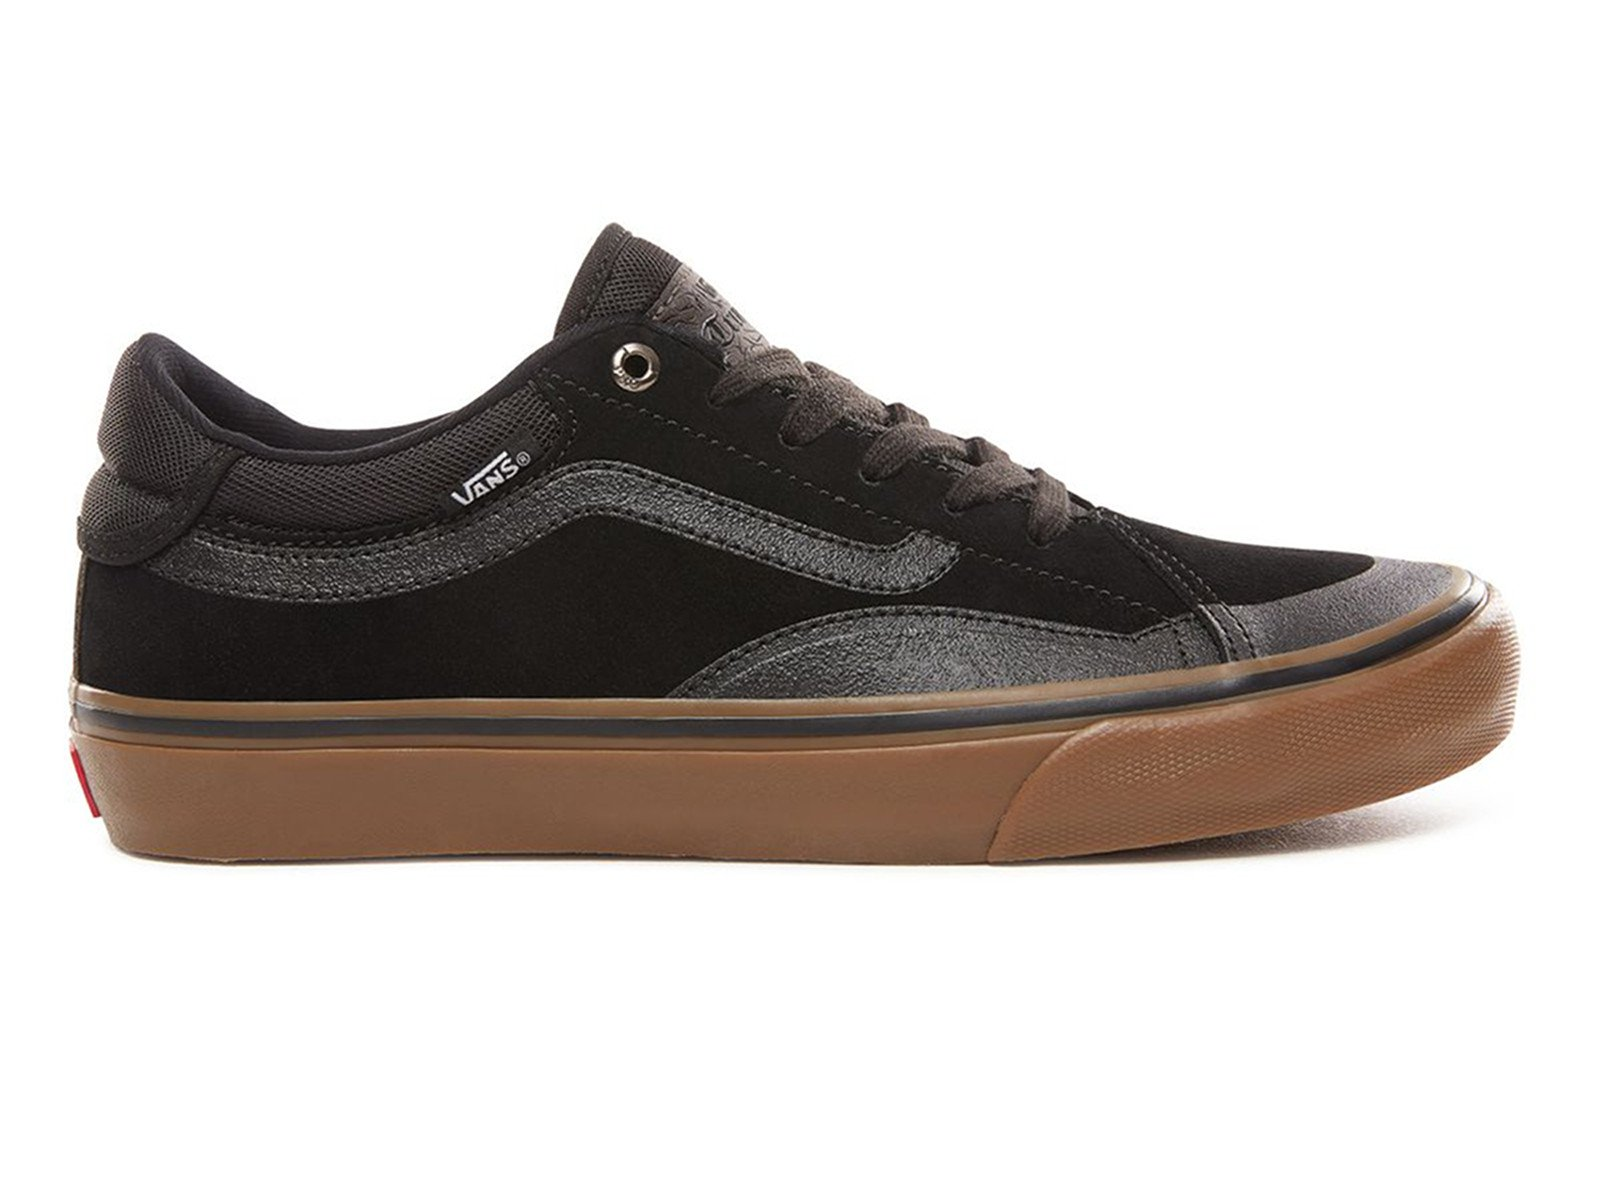 vans tnt advanced prototype schuhe black gum. Black Bedroom Furniture Sets. Home Design Ideas